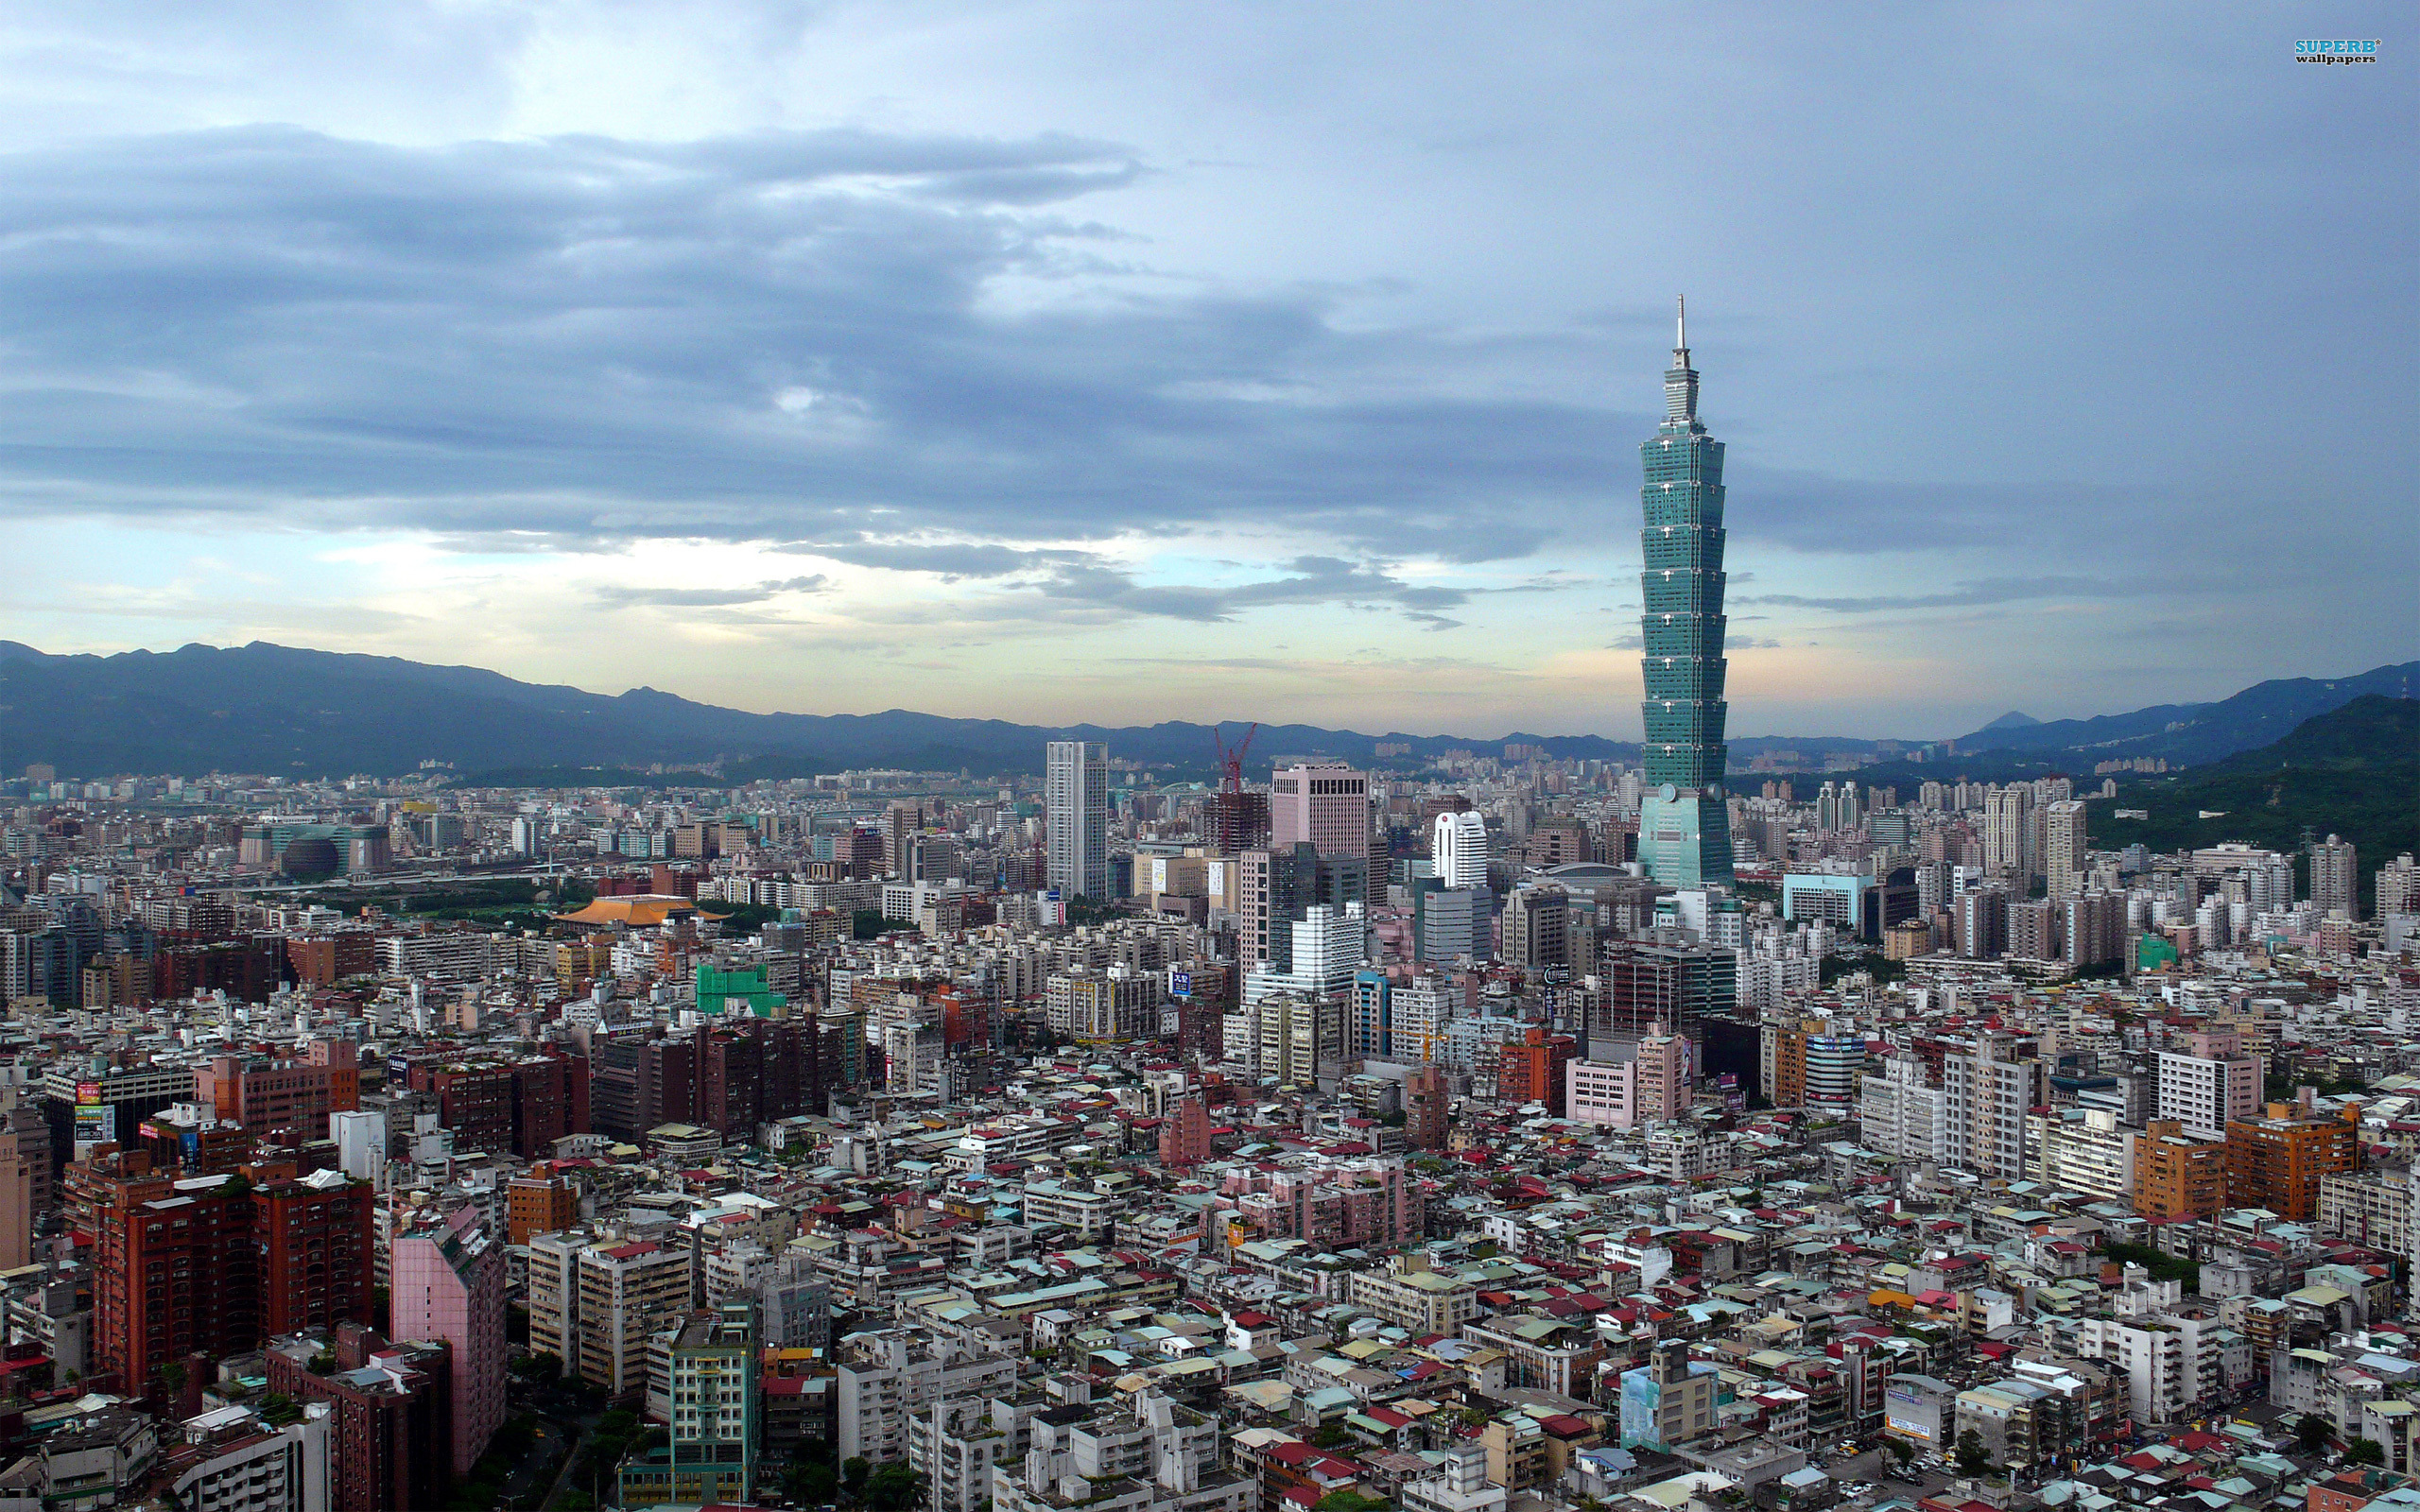 Taipei wallpaper 2560x1600 jpg